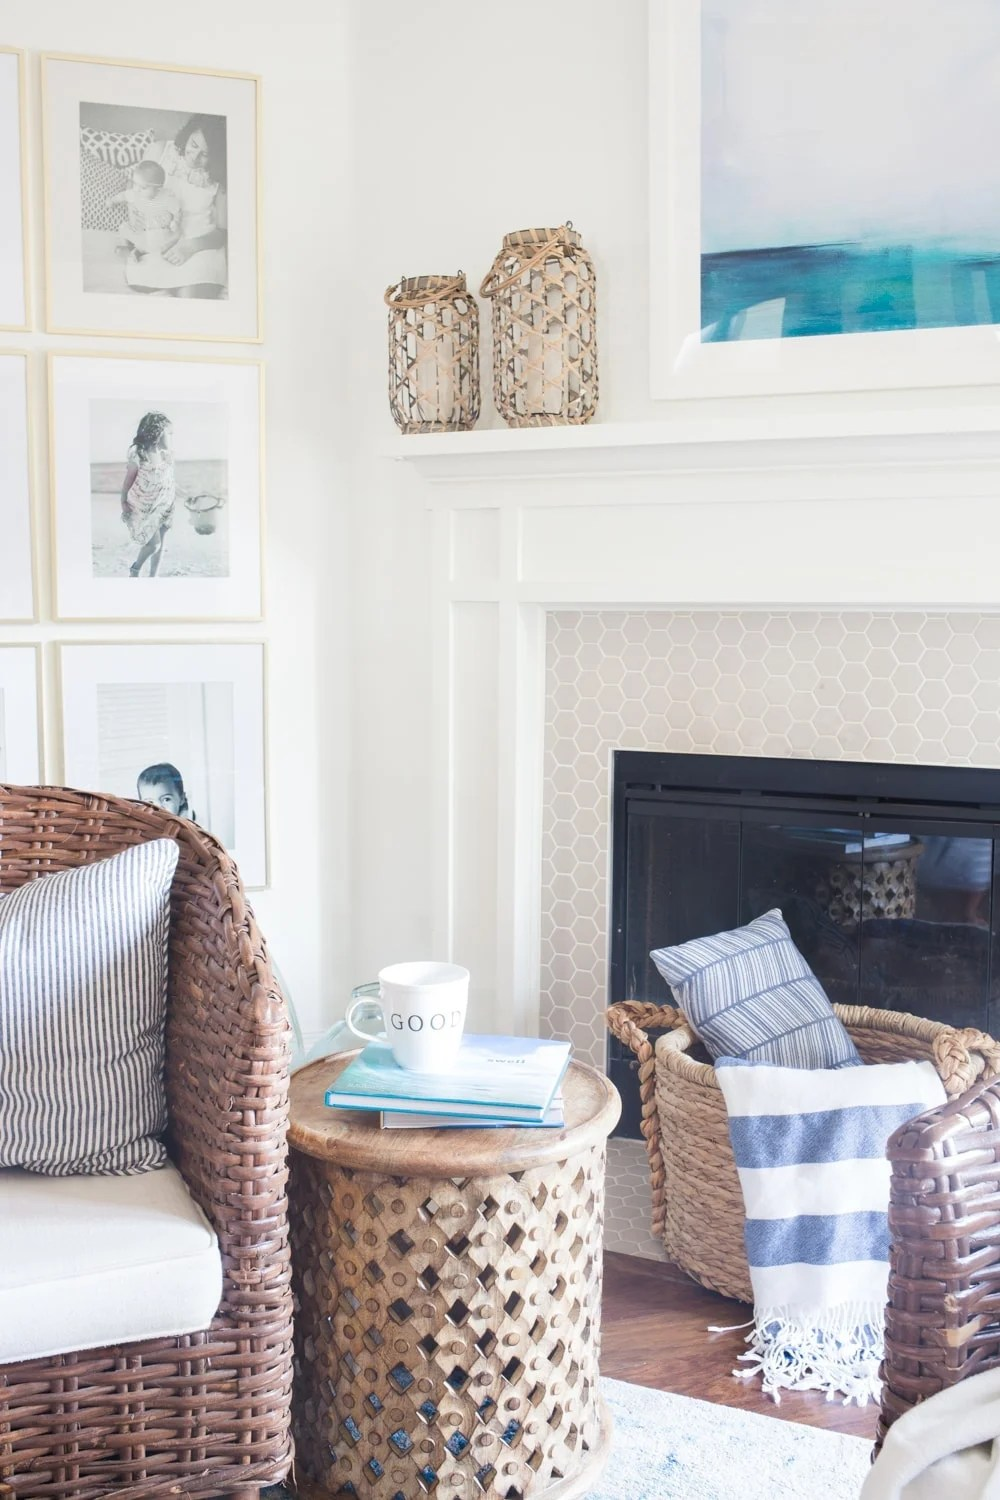 Coastal decor that's not nautical or too themed